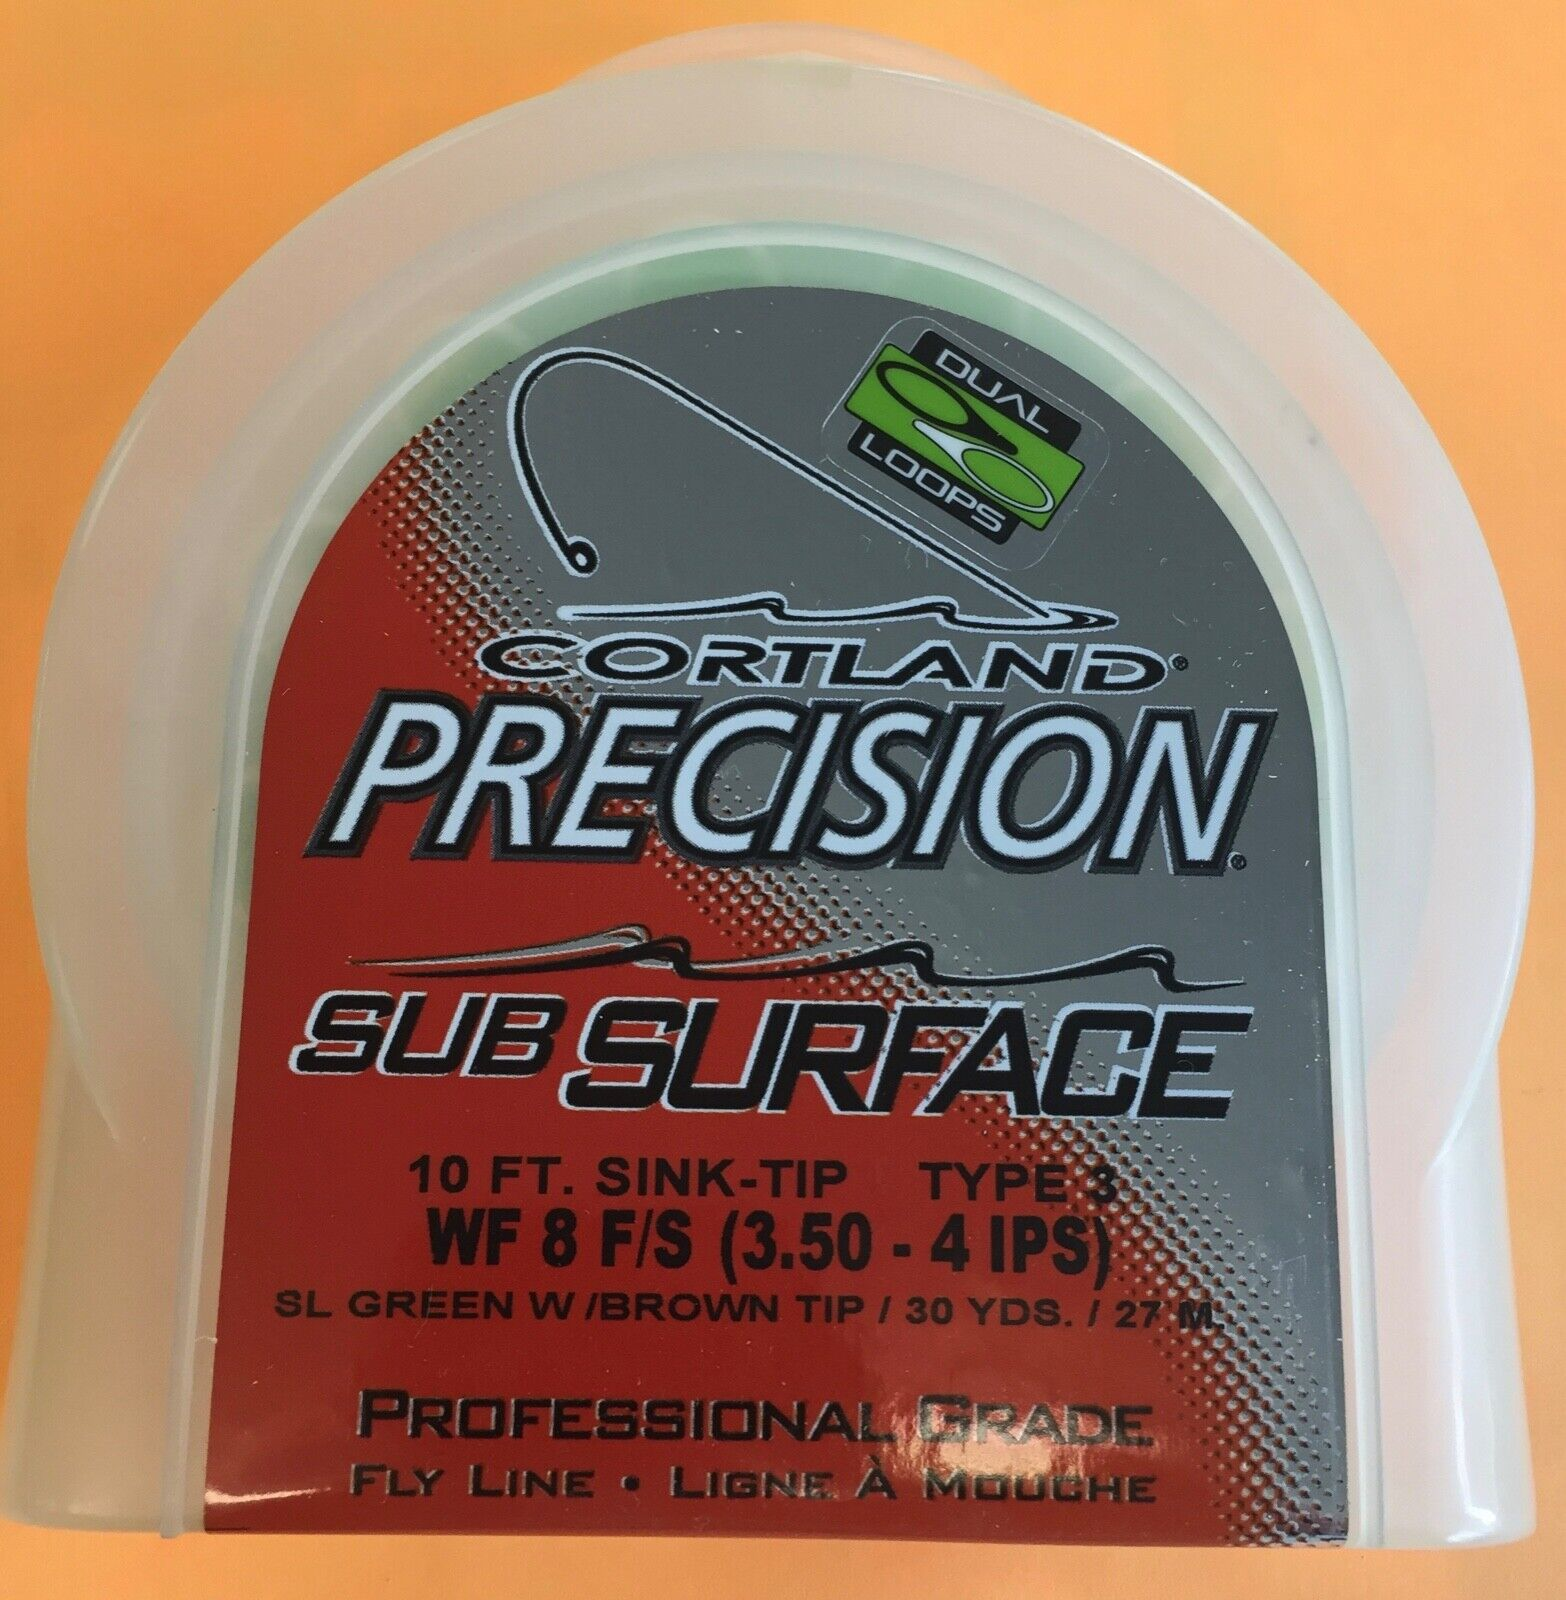 Cortland Precision SubSurface WF8F S (3.5-4. IPS)  10 ft sink tip type 3 Fly Line  fast delivery and free shipping on all orders